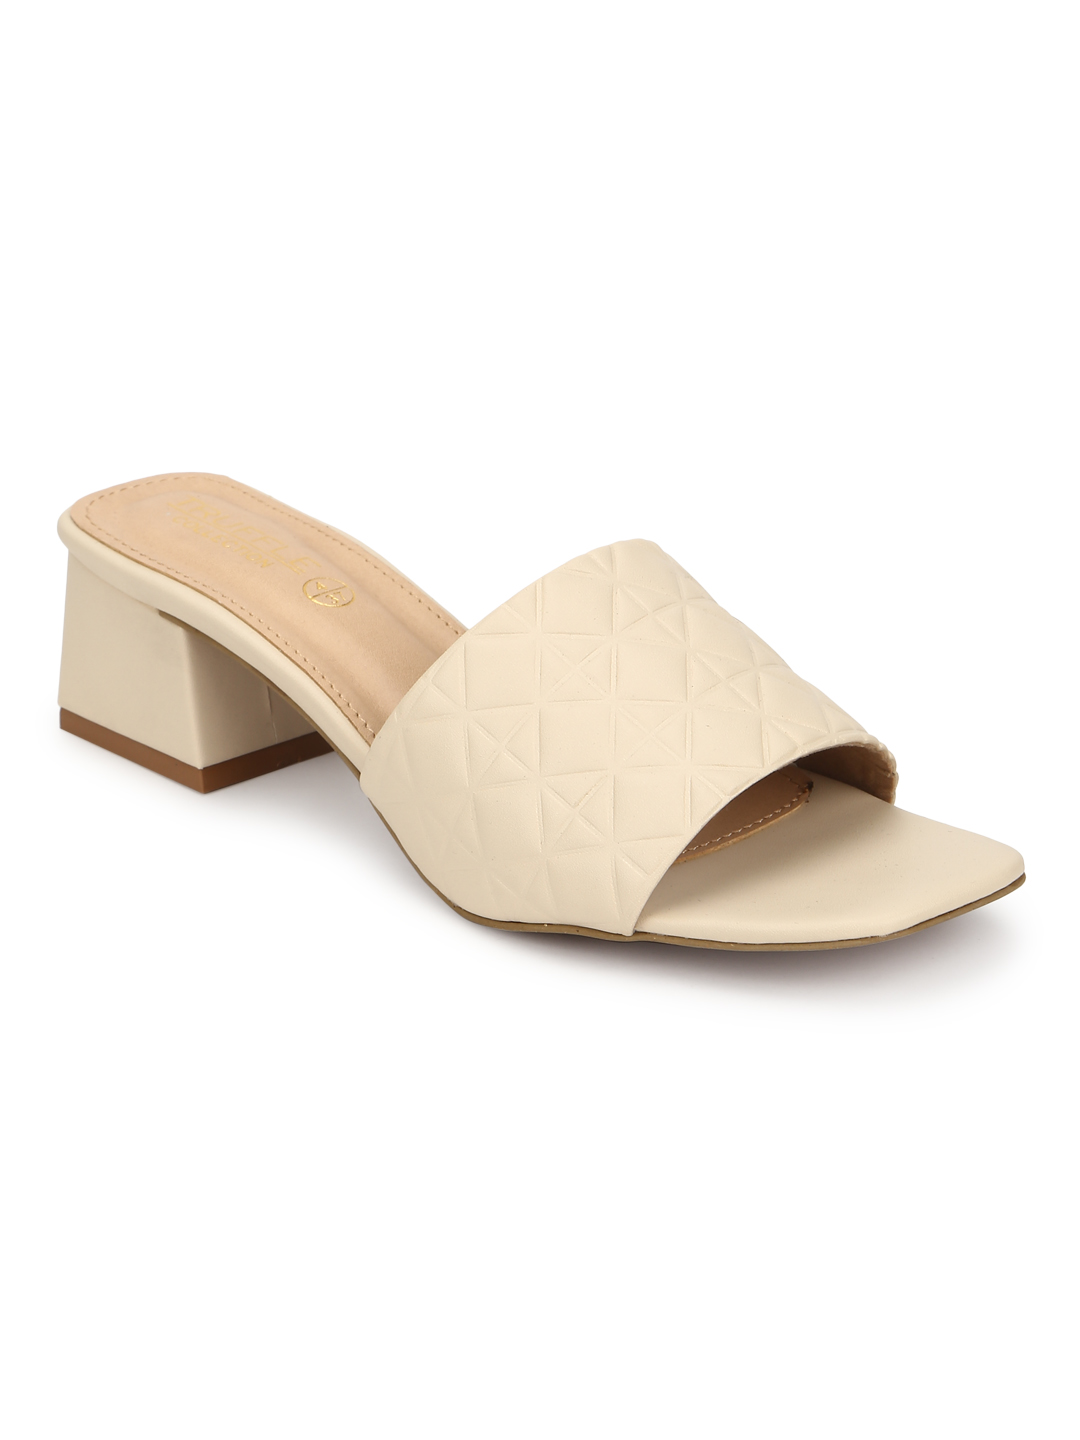 Truffle Collection | Truffle Collection Nude PU Textured Block Heel Sandals